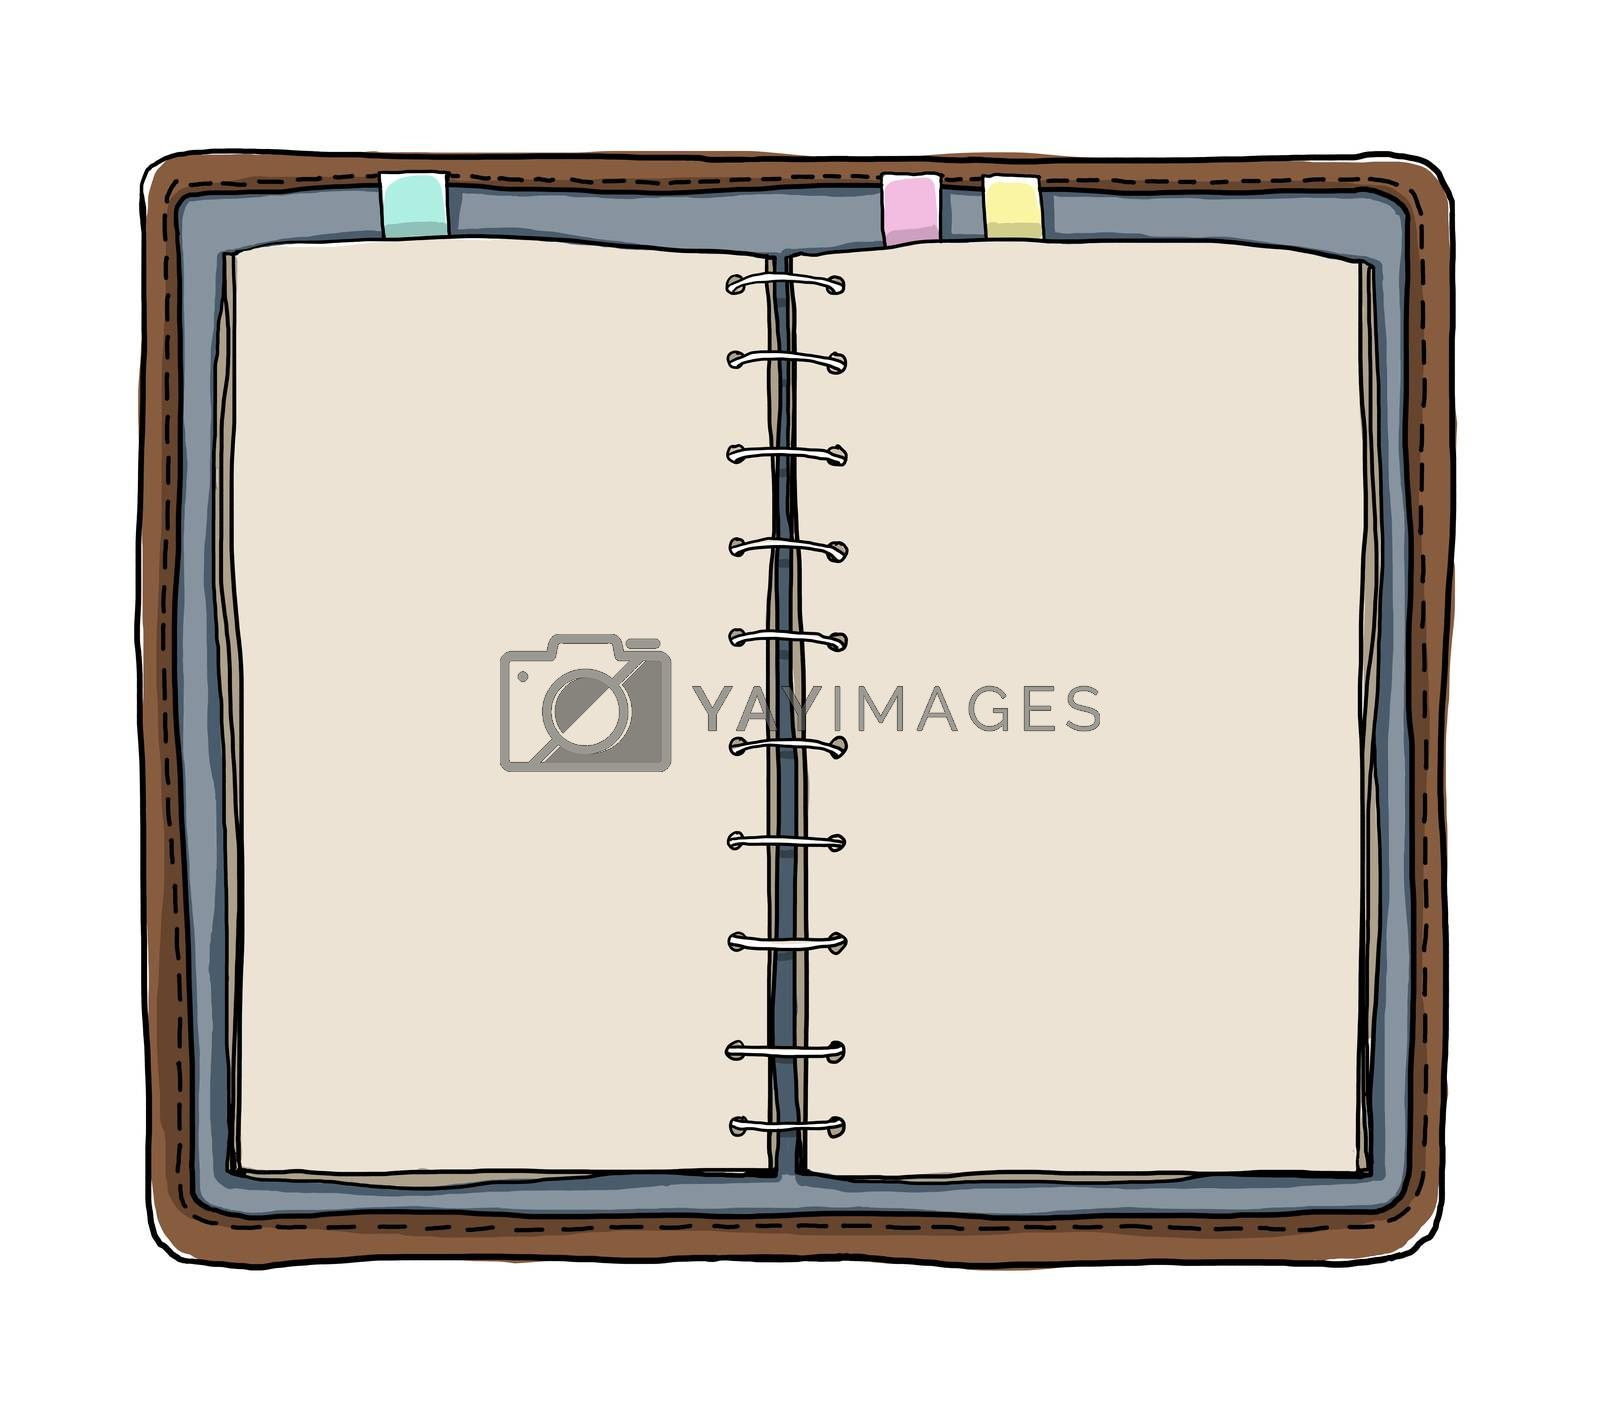 notebooks art vintage on white background painting illustration